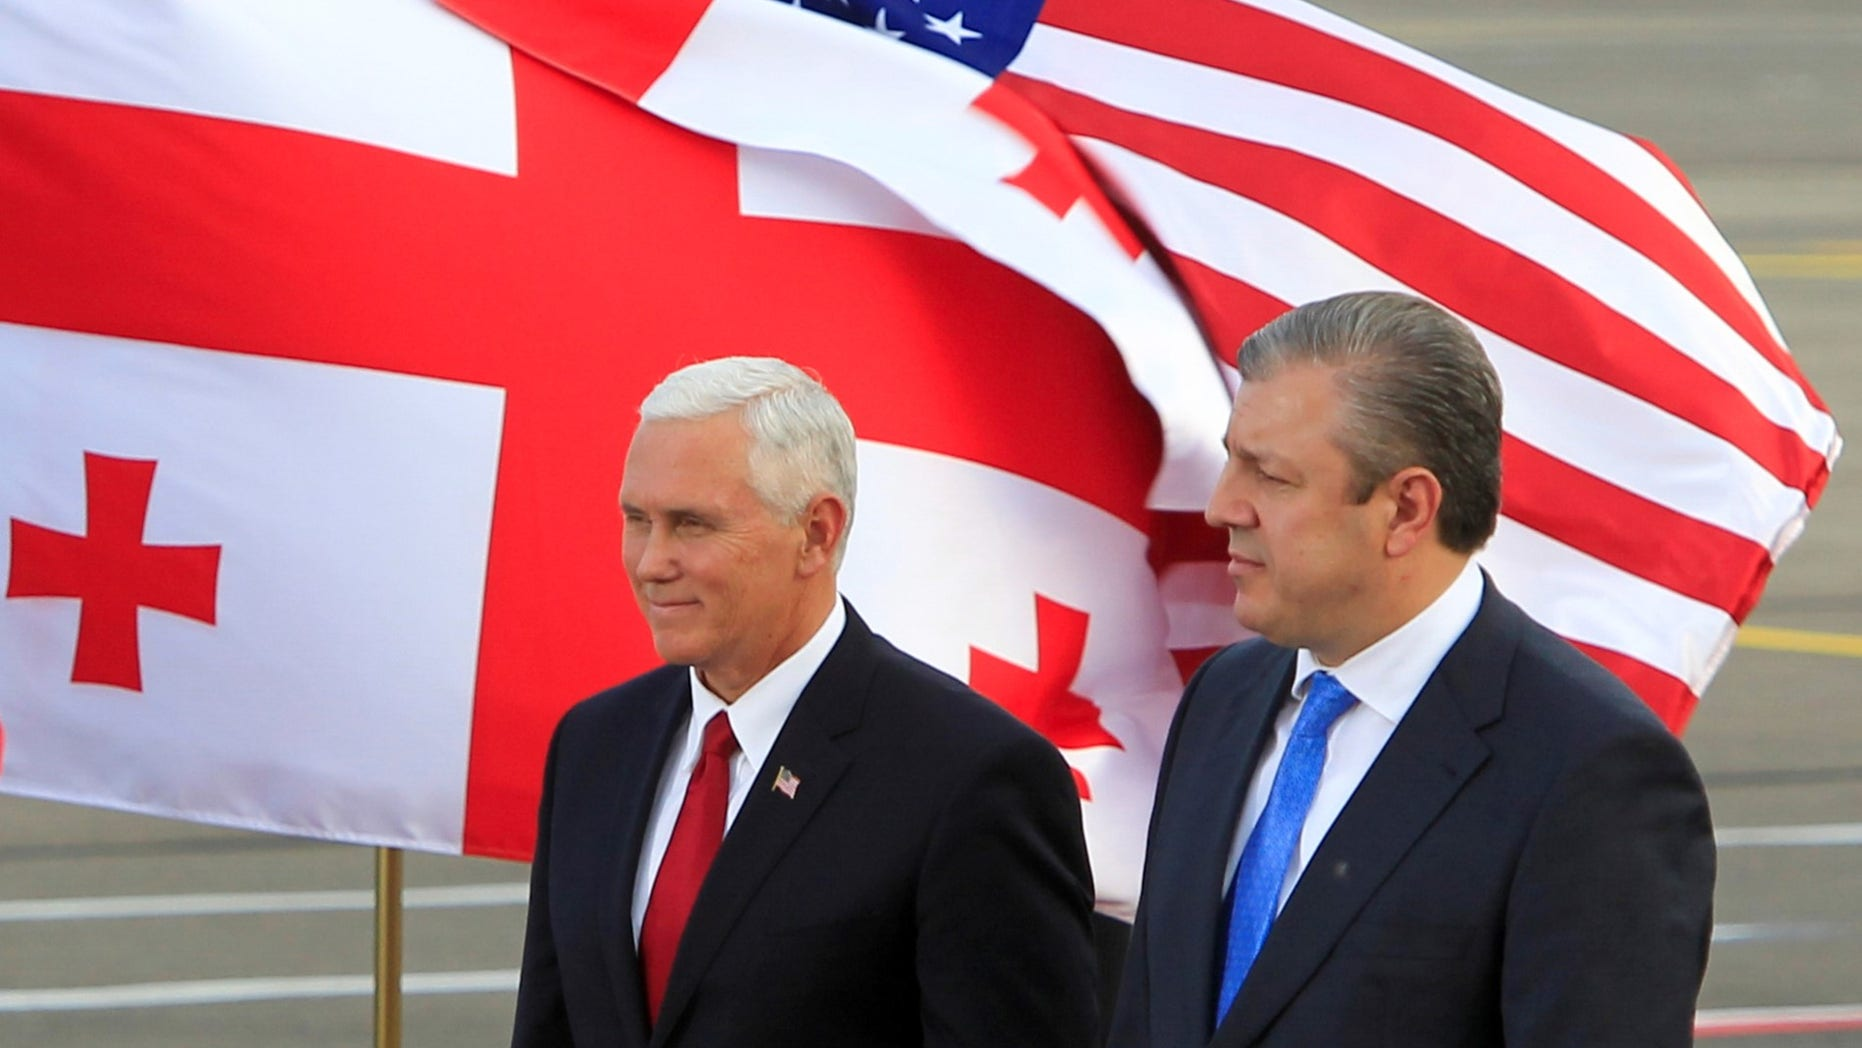 FILE -- Vice President Mike Pence and Georgian Prime Minister Georgi Kvirikashvili attend a welcoming ceremony at the Tbilisi International Airport, Georgia July 31, 2017.